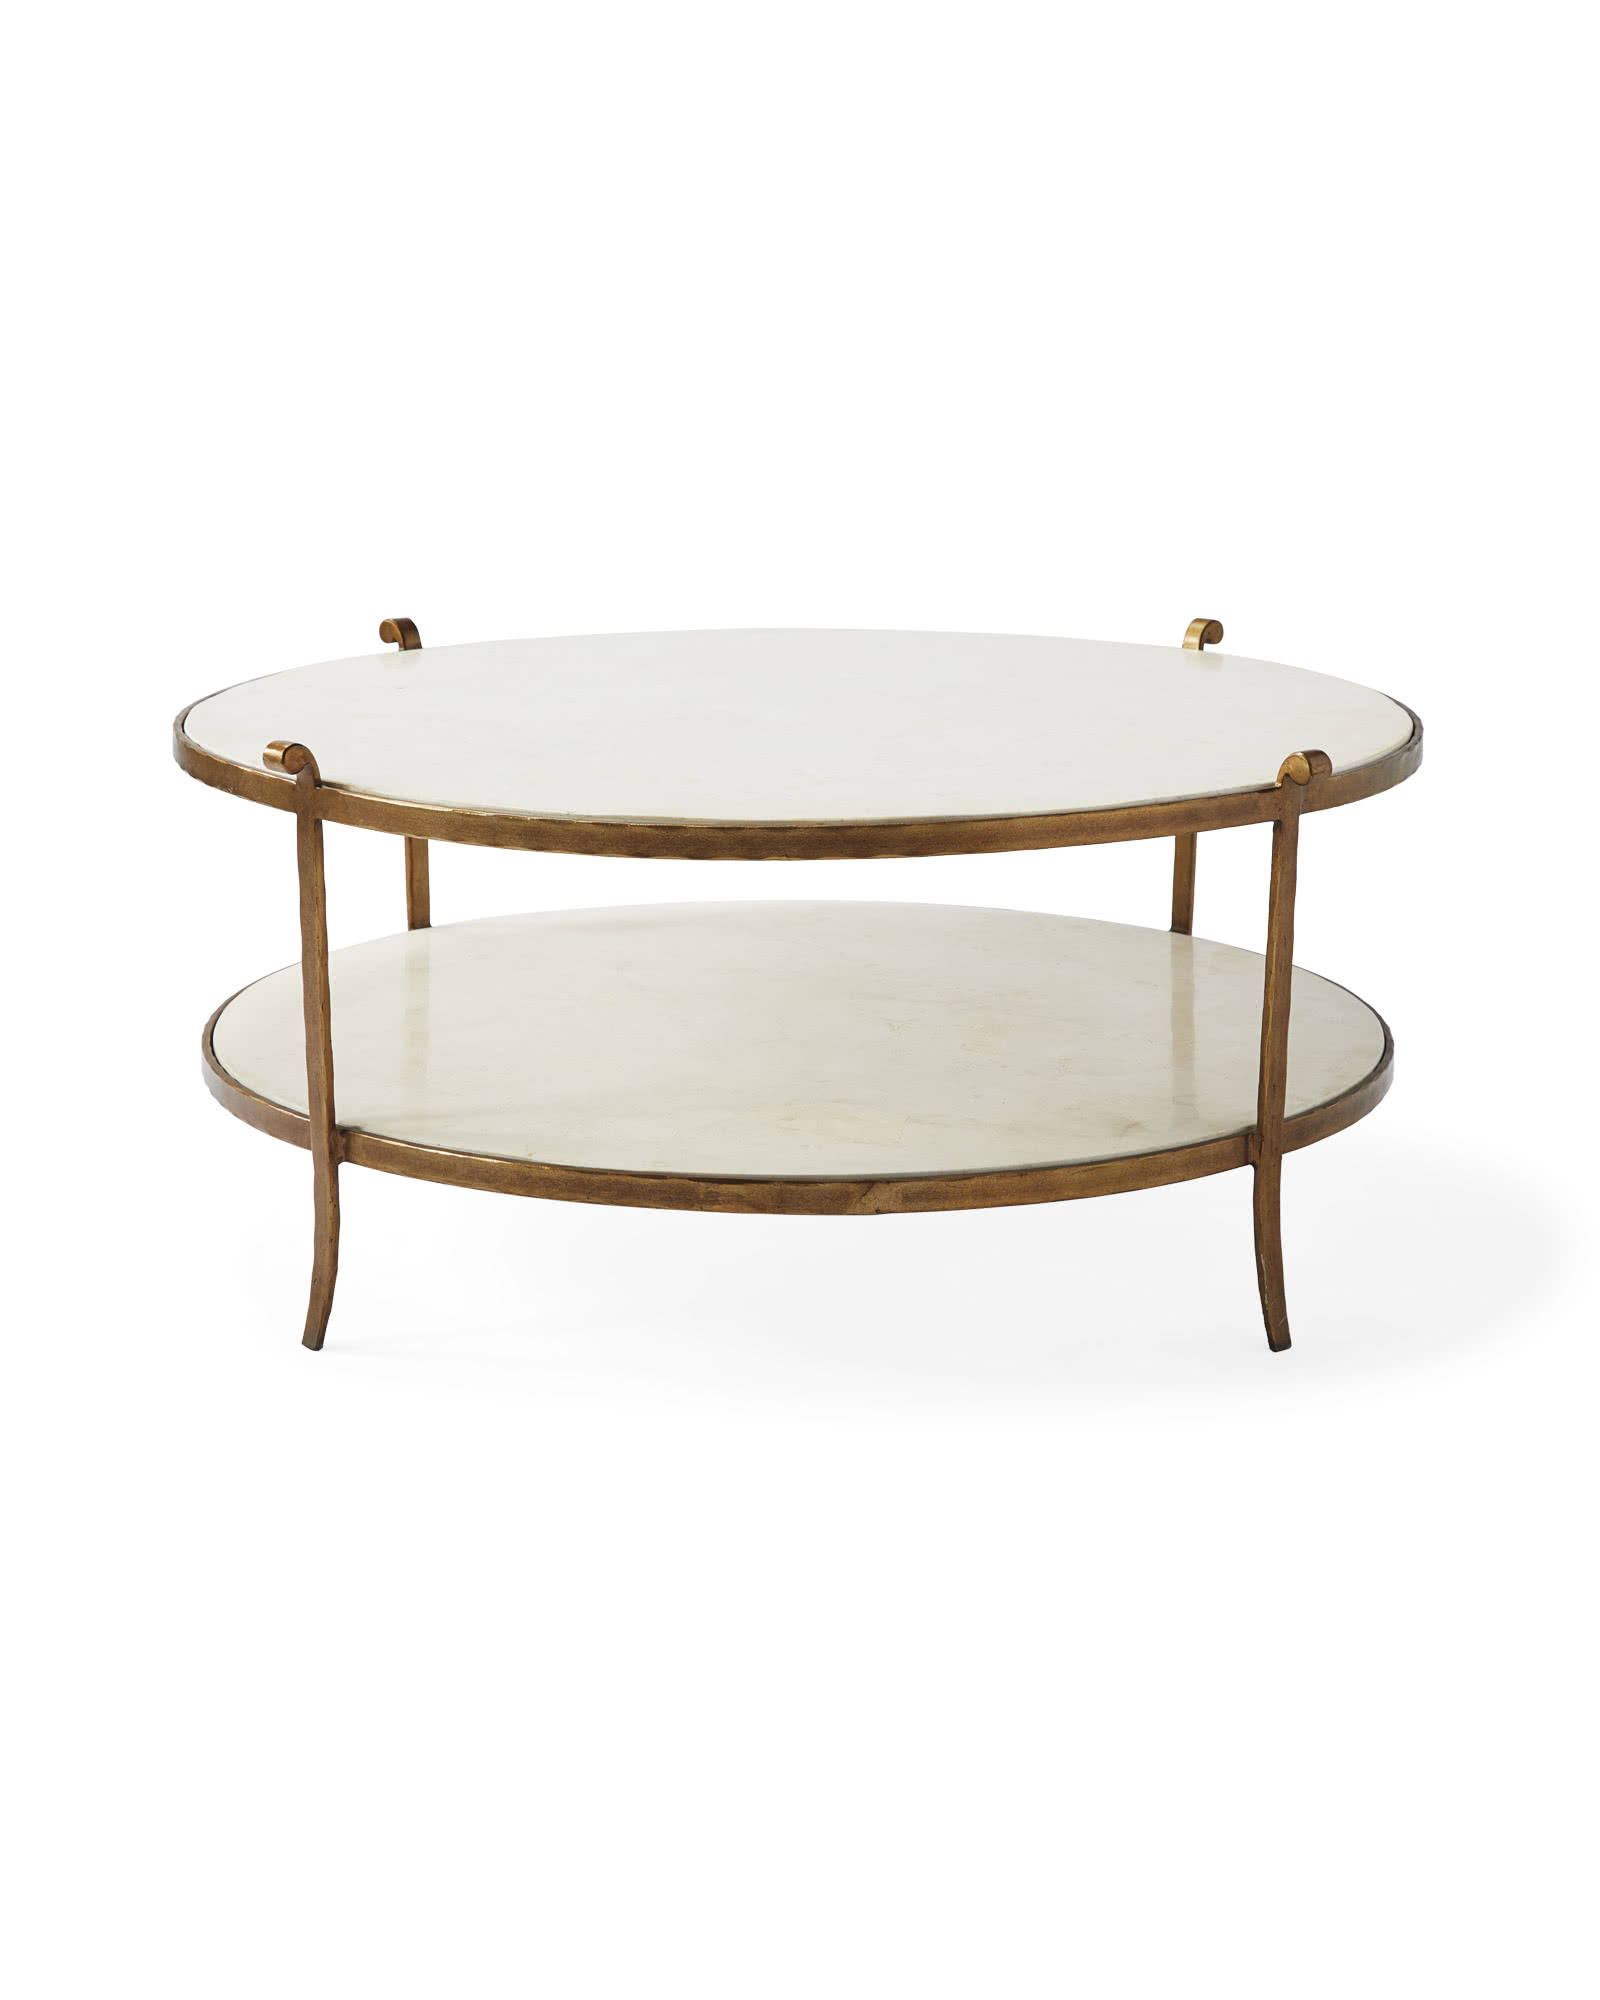 St. Germain Round Coffee Table,